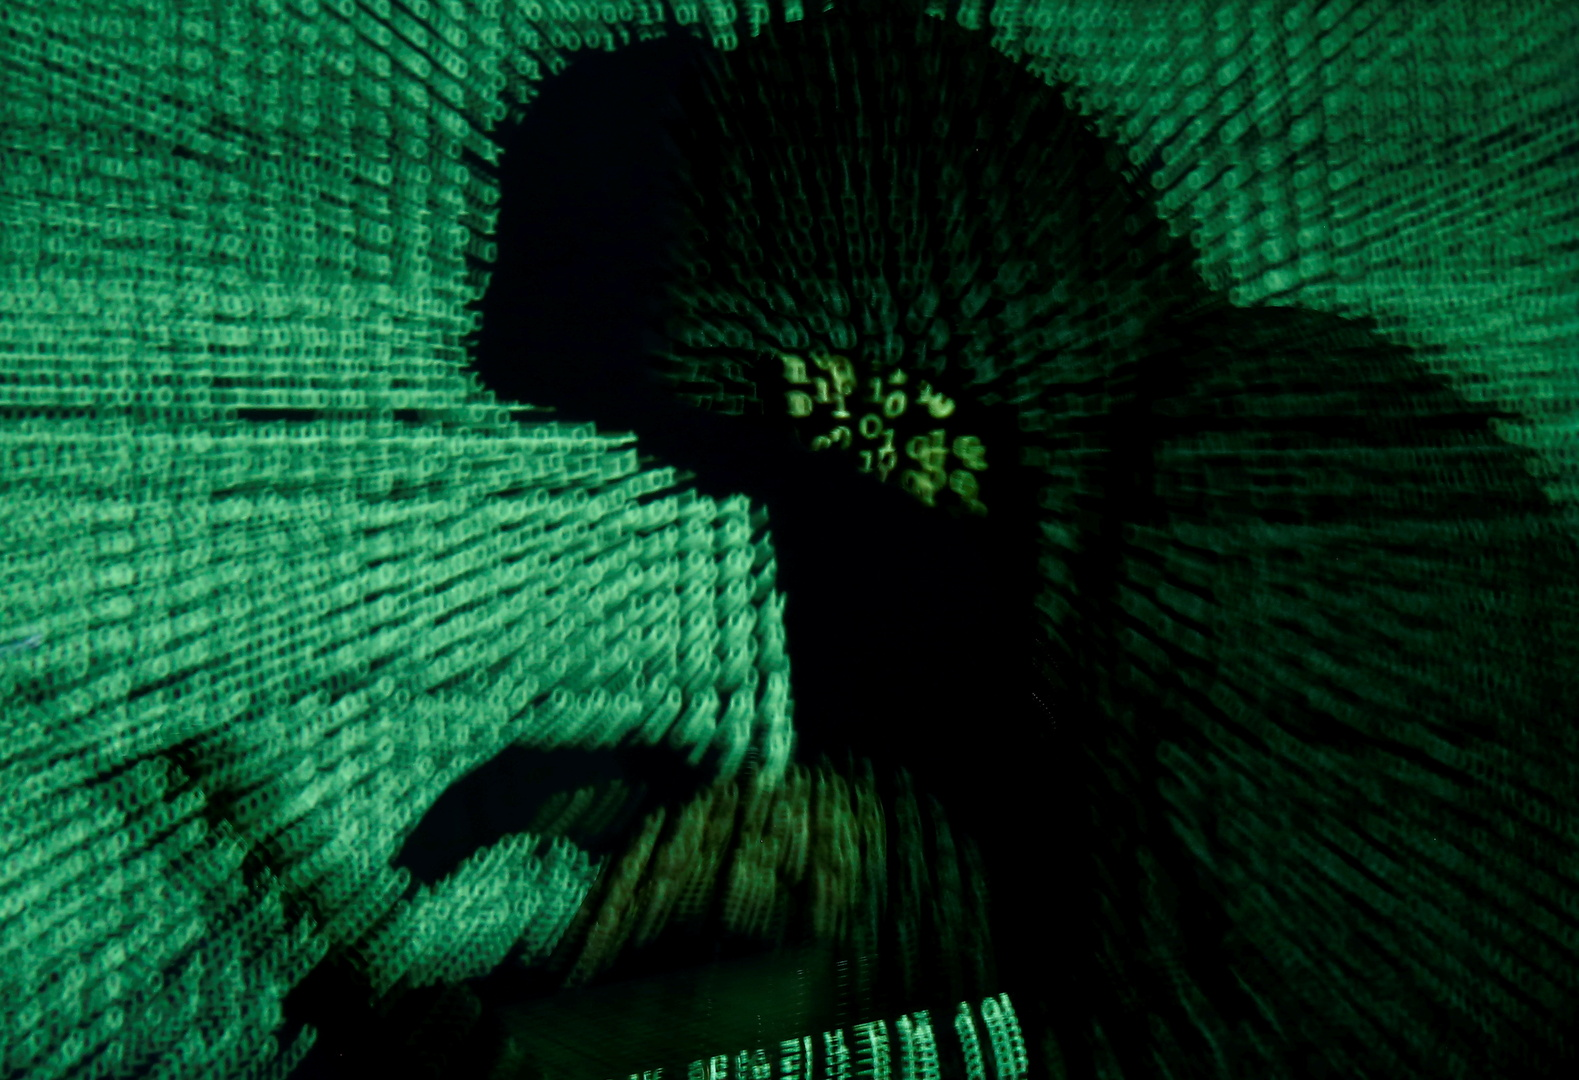 Israel: NSO spyware exported for legitimate use